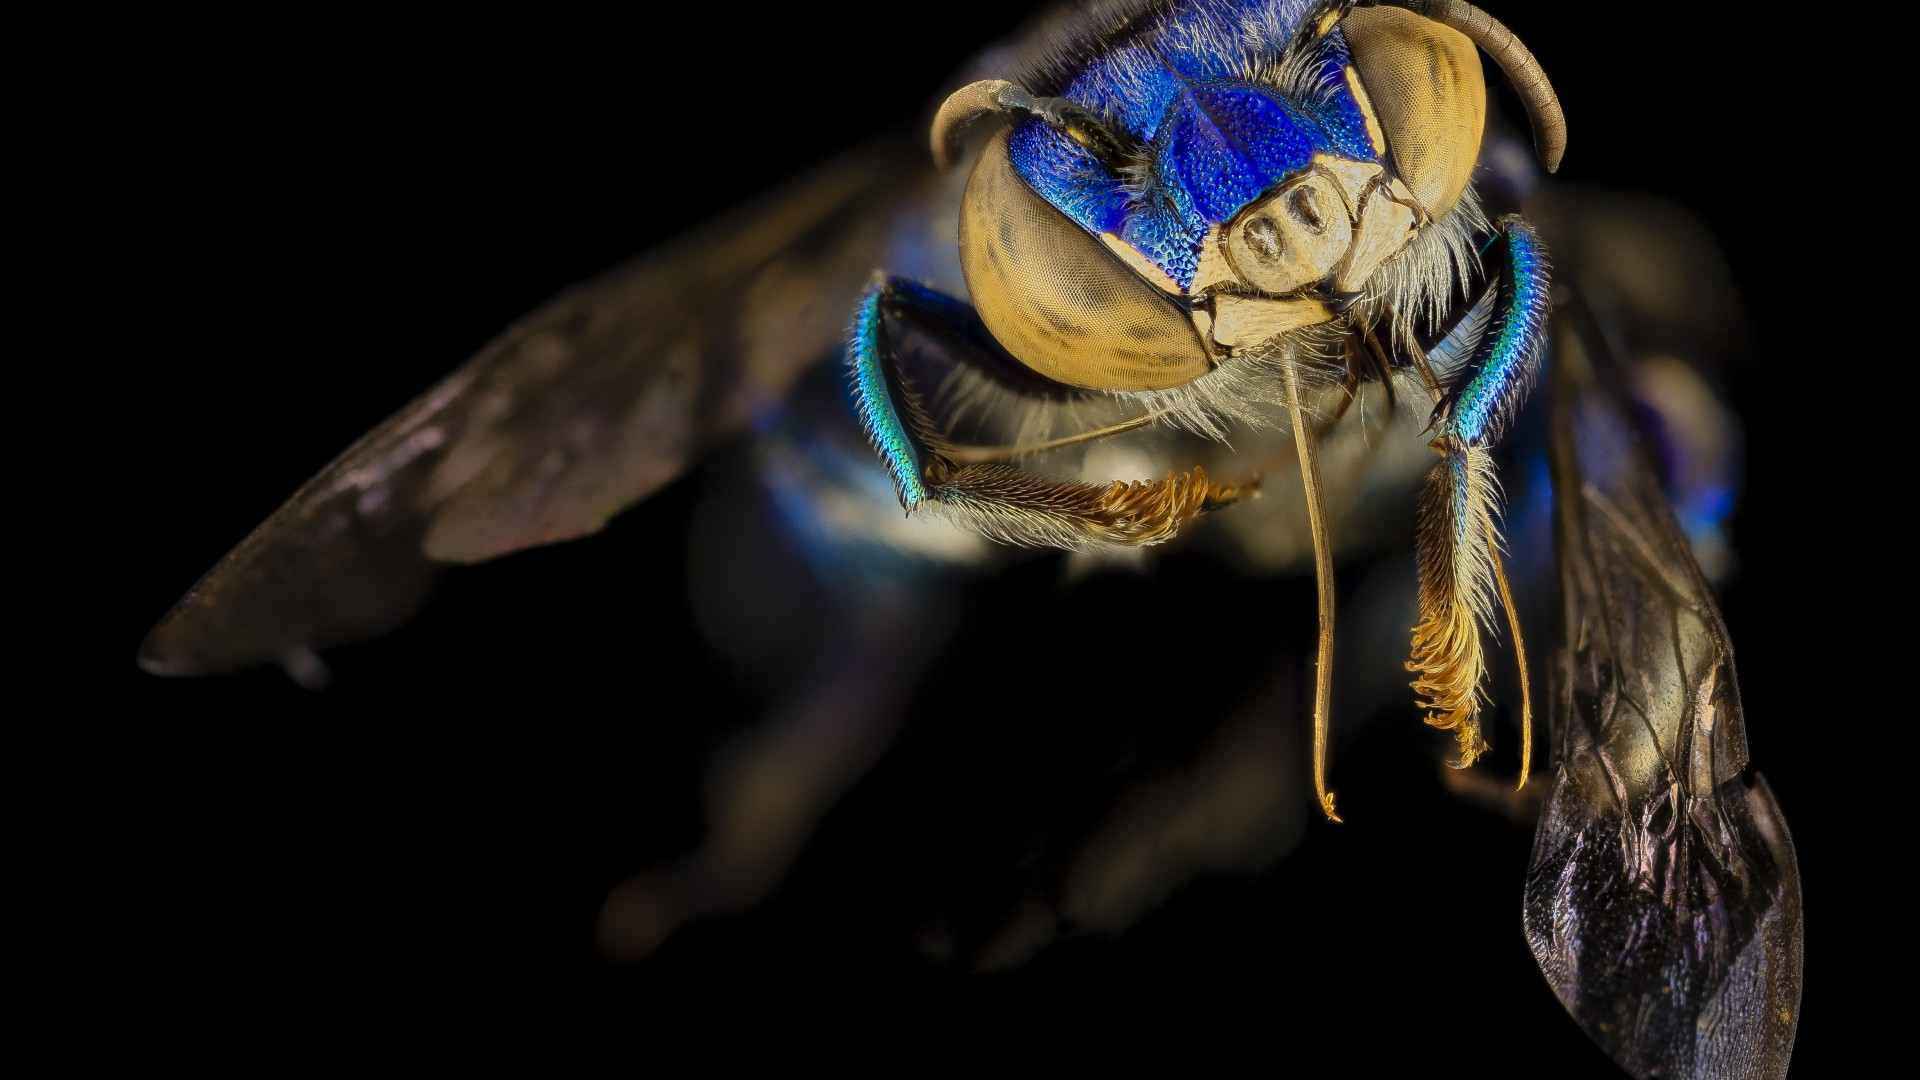 Euglossa Orchid Bee, Mexico, Argentina, macro, blue, green, insects, black background (horizontal)